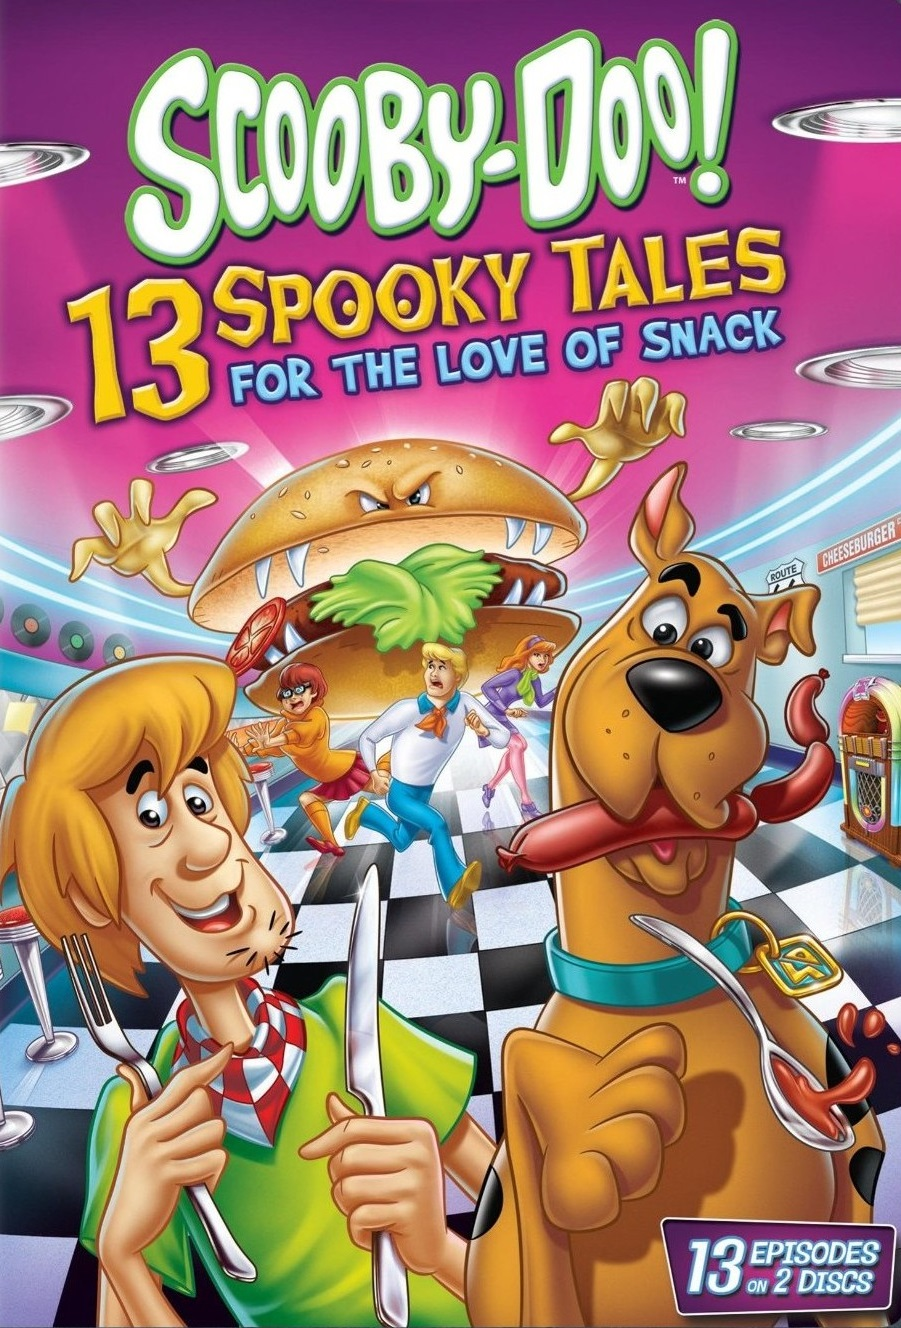 Scooby-Doo: 13 Spooky Tales Love of Snack [2014] [DVD9] [NTSC] [Latino] [2 DISC]